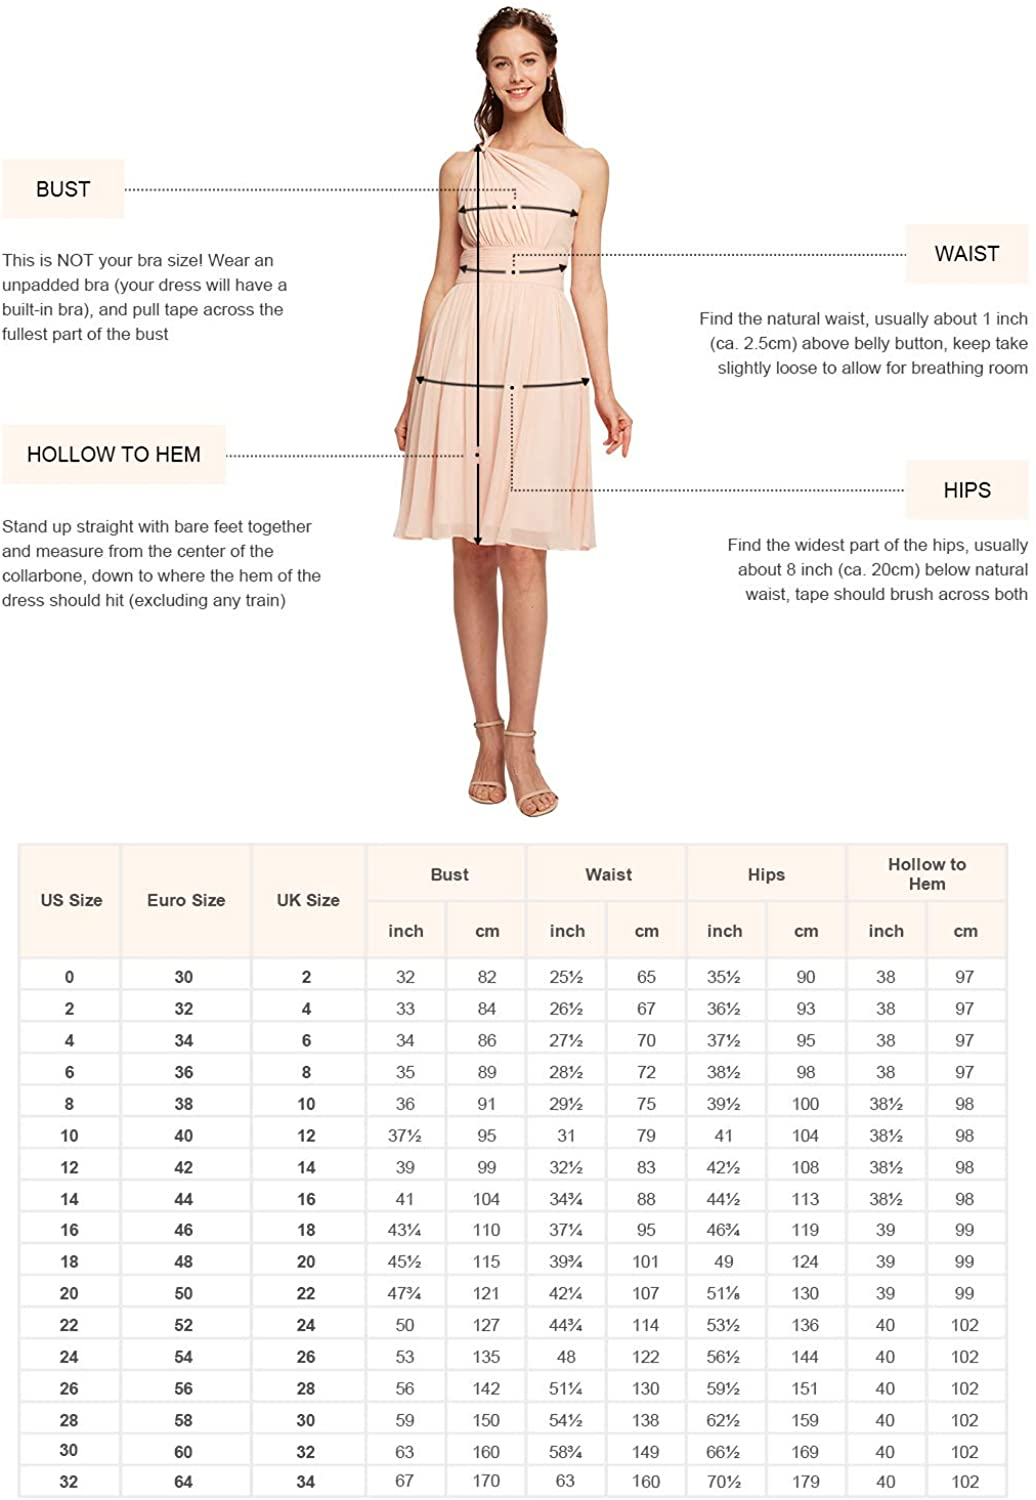 ALICEPUB V-Neck Chiffon Bridesmaid Dresses Short Cocktail Formal Dresses for Women Party with Flutter Sleeves